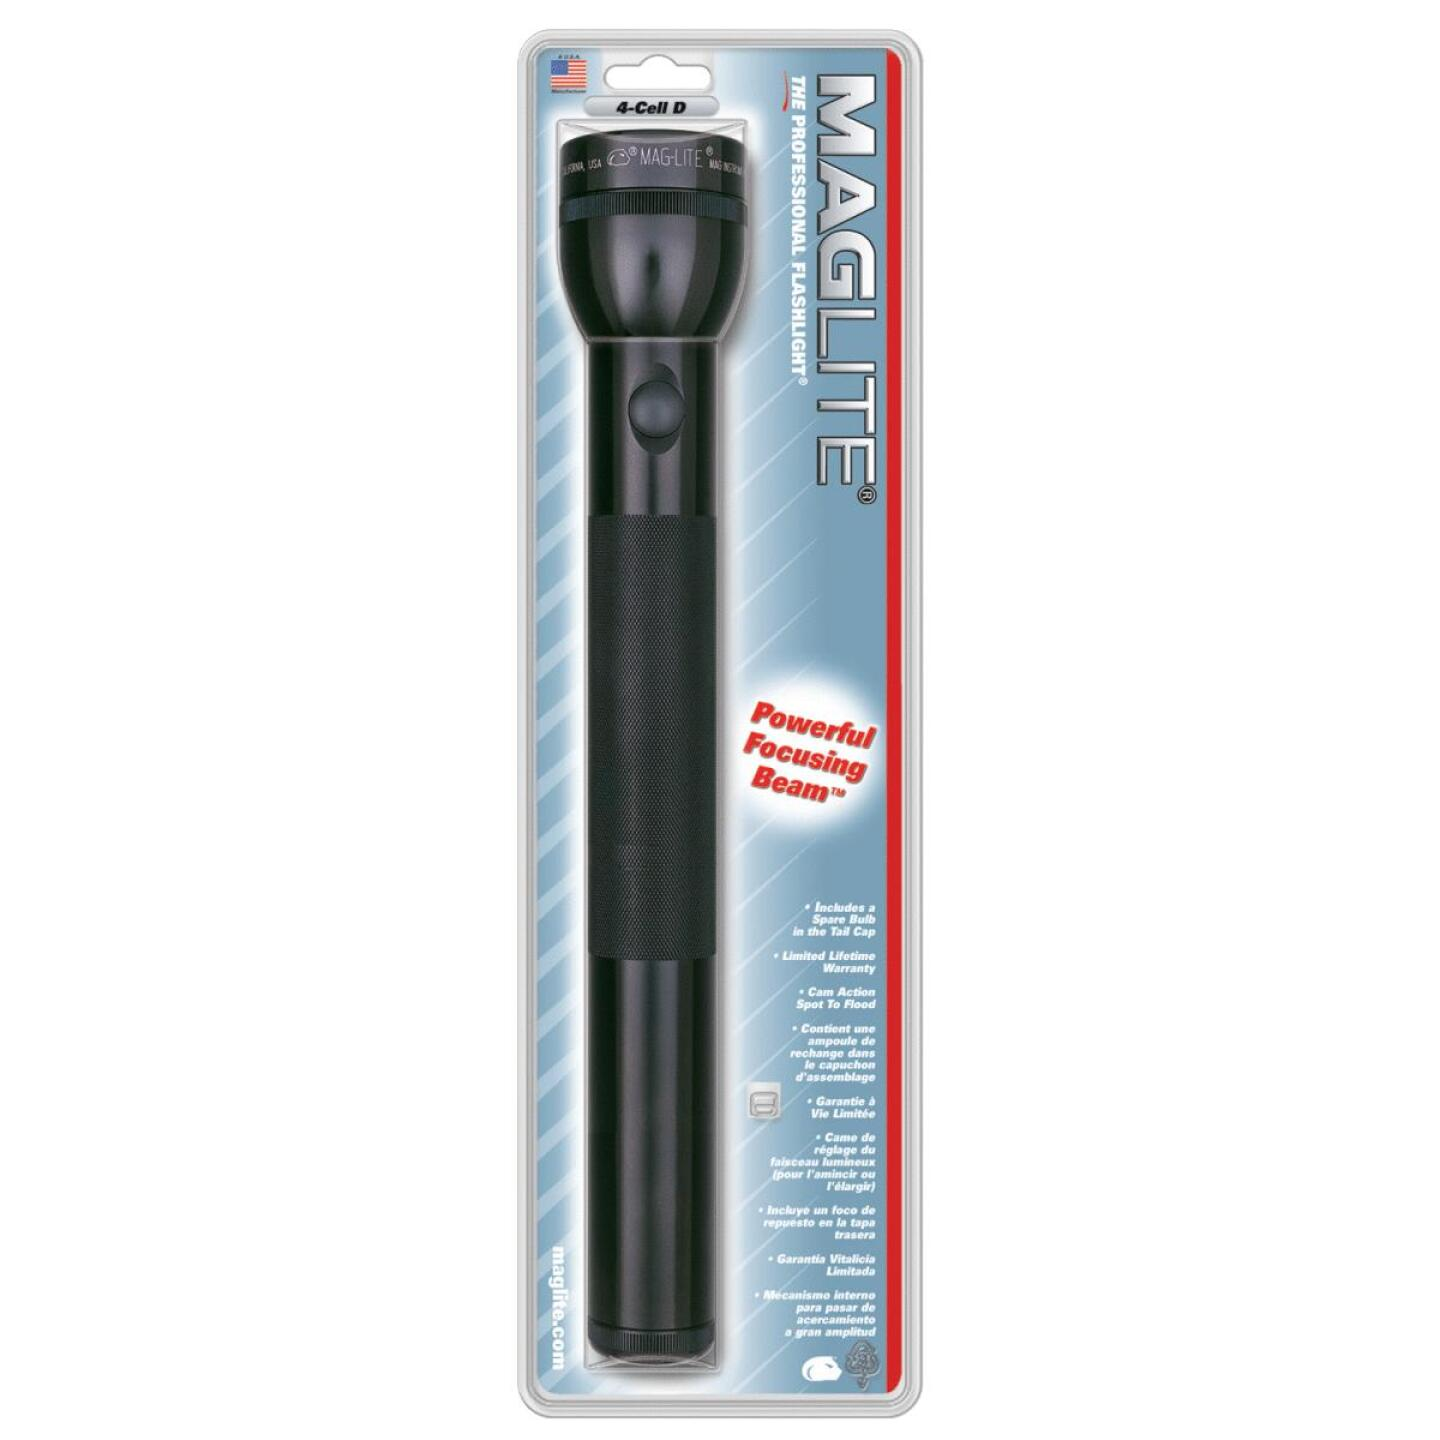 Maglite 98 Lm. Xenon 4D Flashlight, Black Image 2